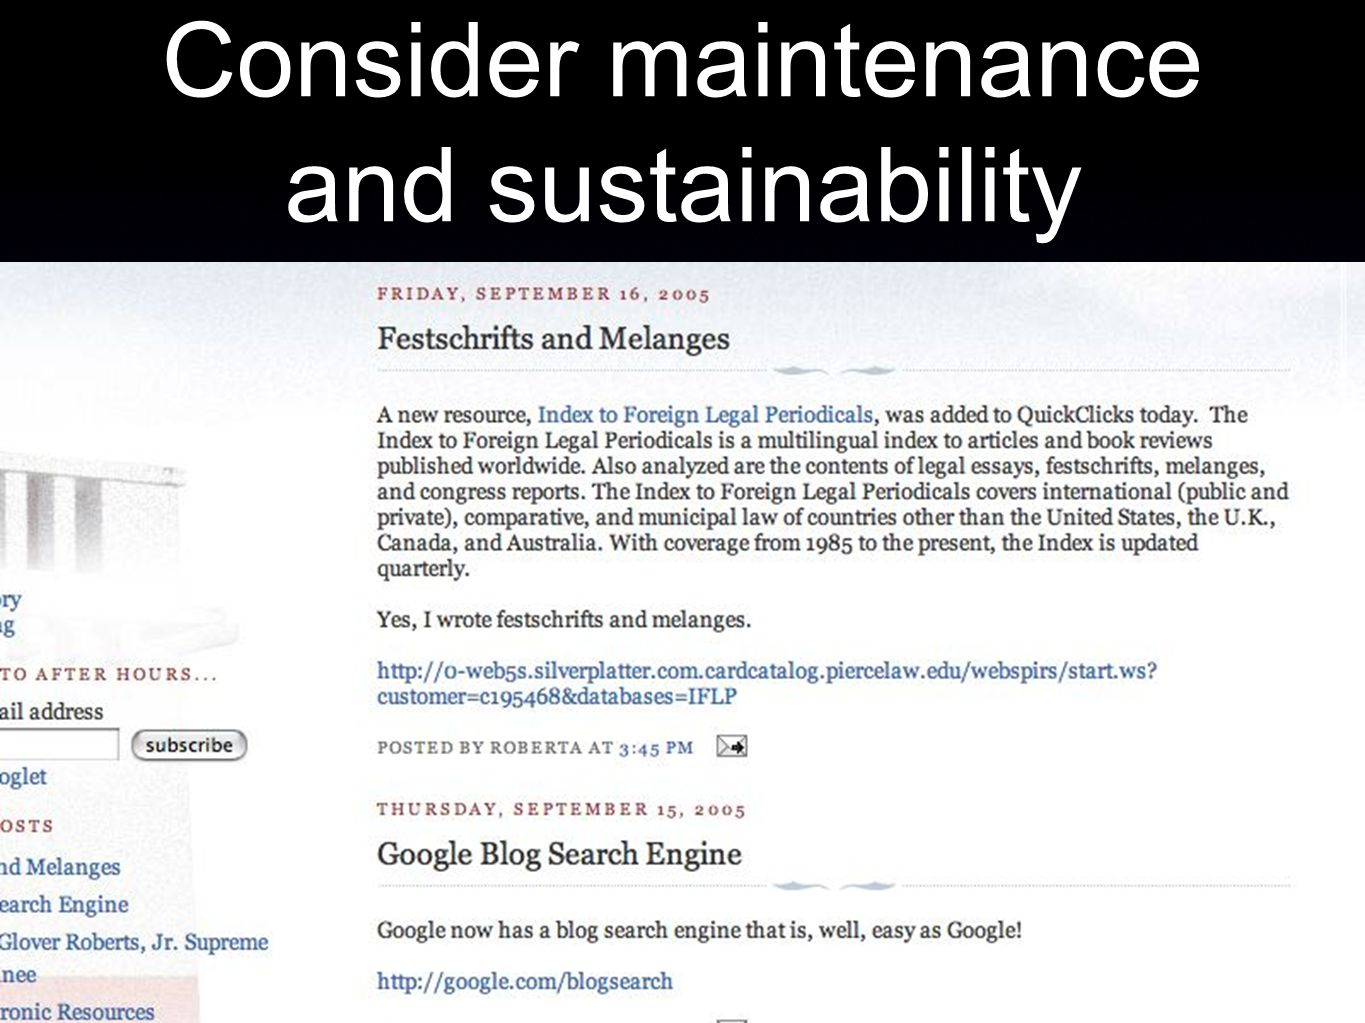 Consider maintenance and sustainability